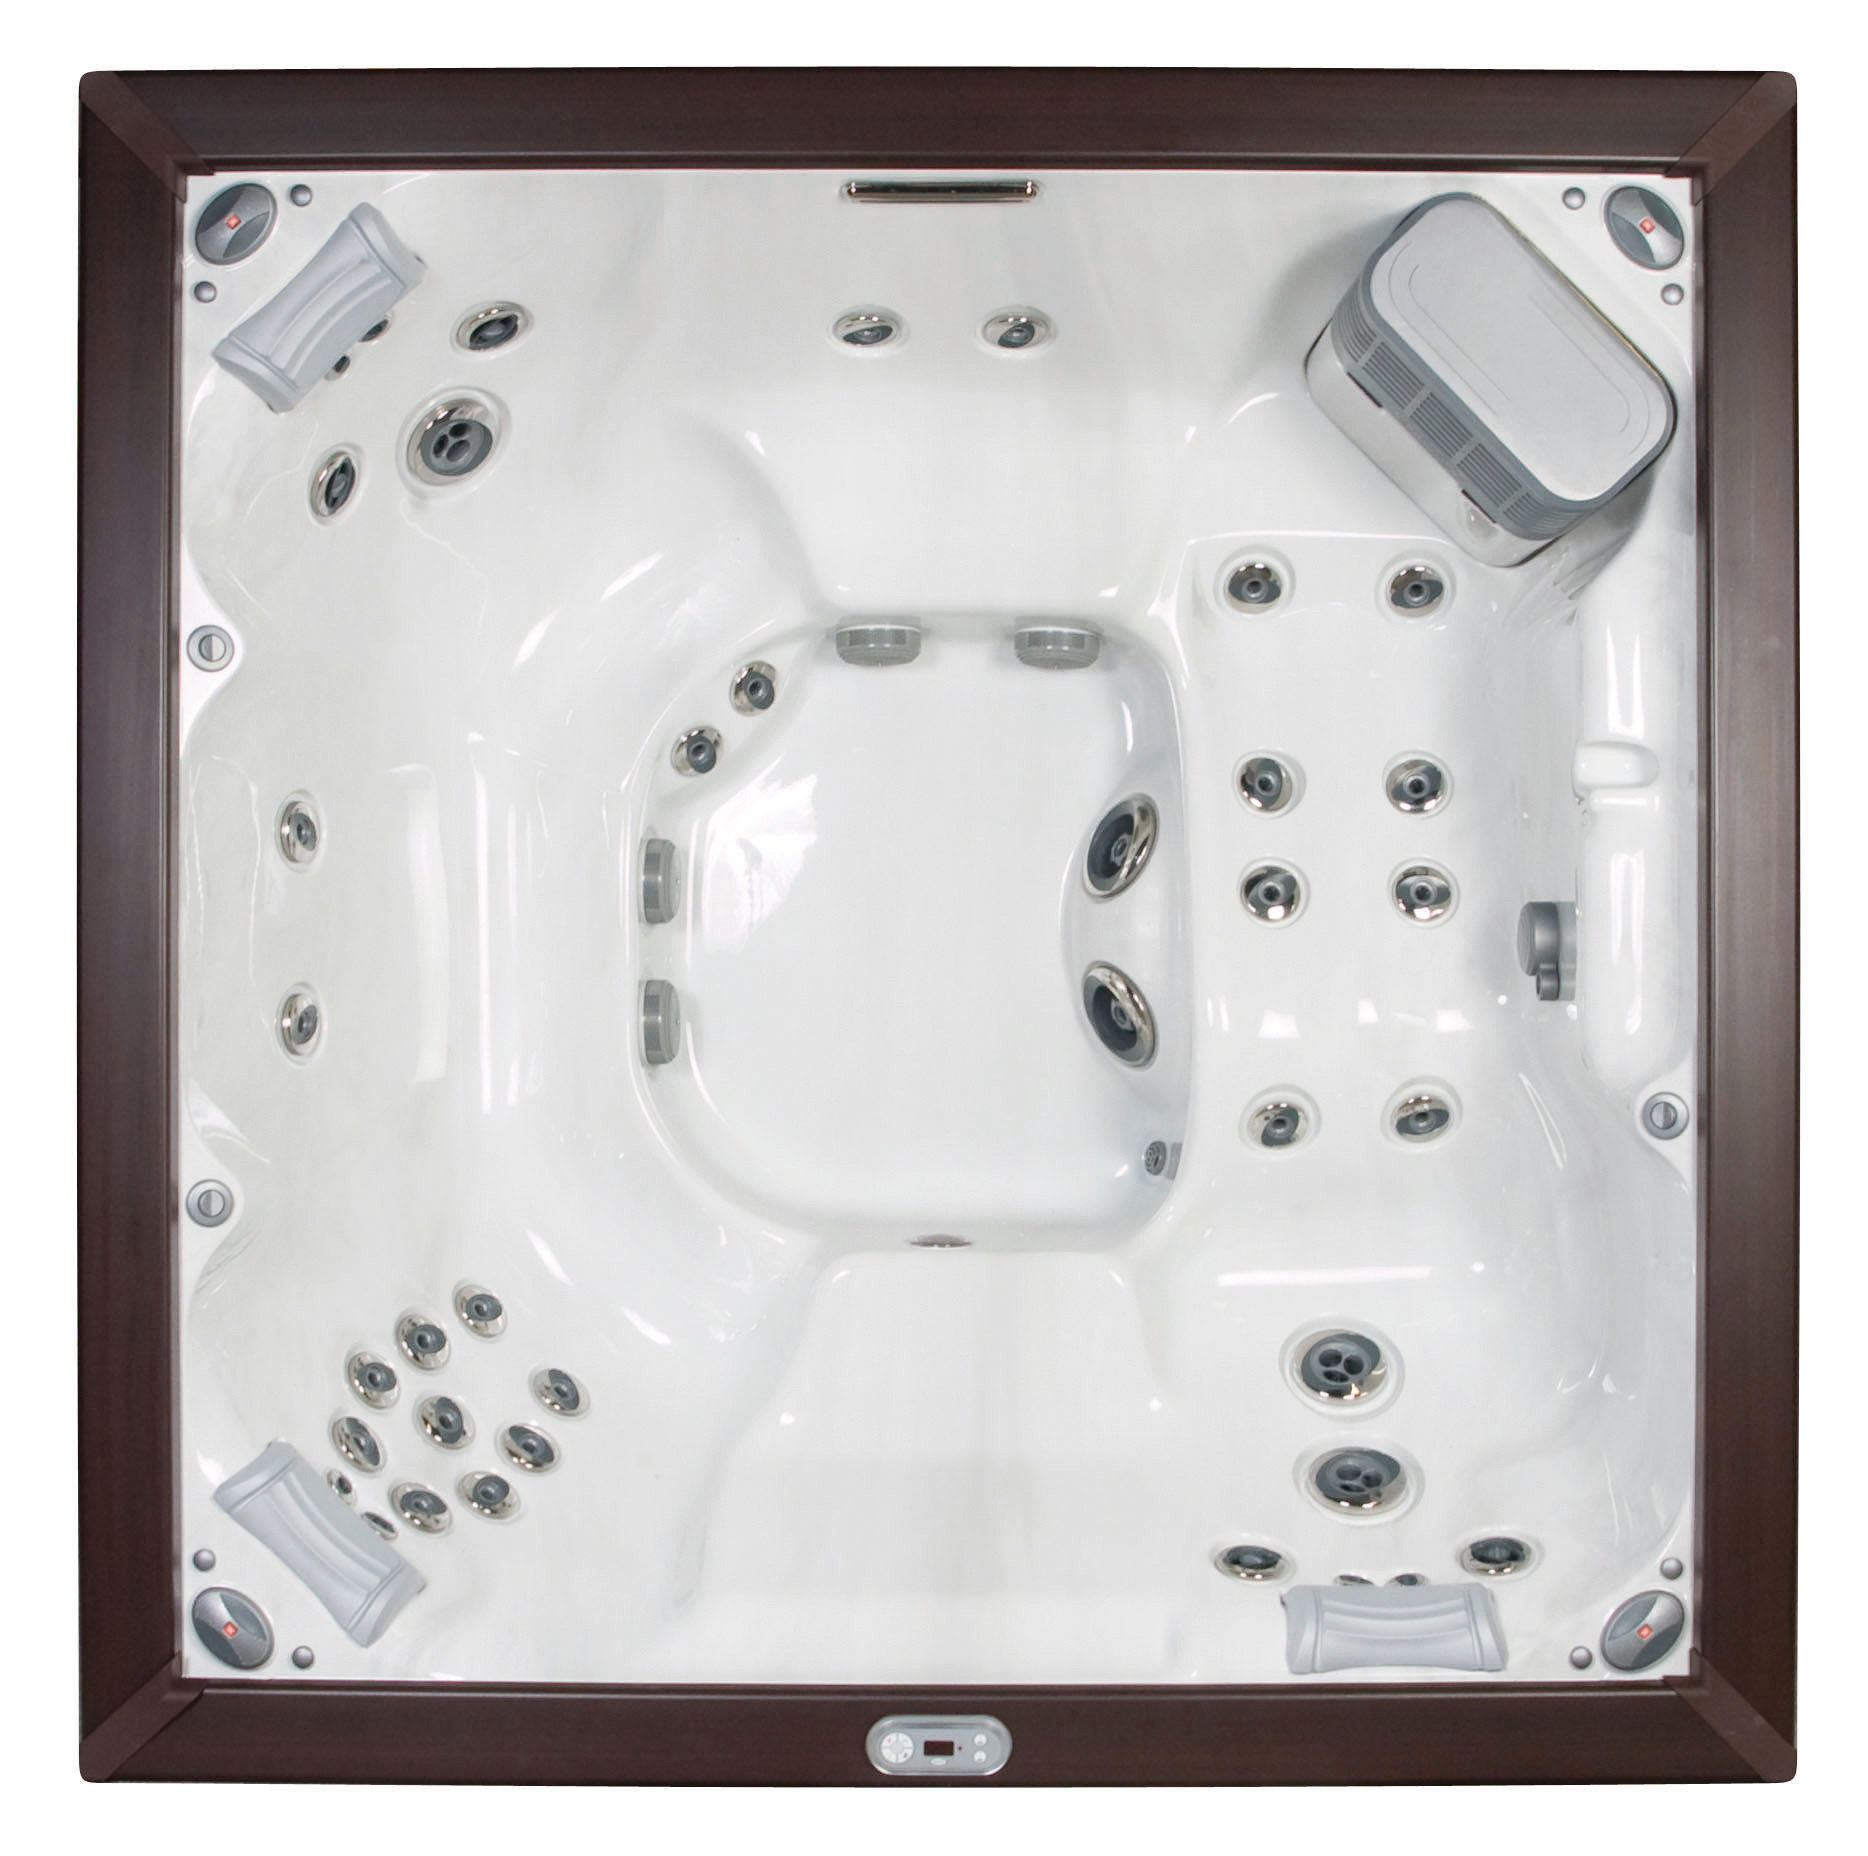 jacuzzi j lxl vente spa jacuzzi 5 places bordeaux en gironde. Black Bedroom Furniture Sets. Home Design Ideas